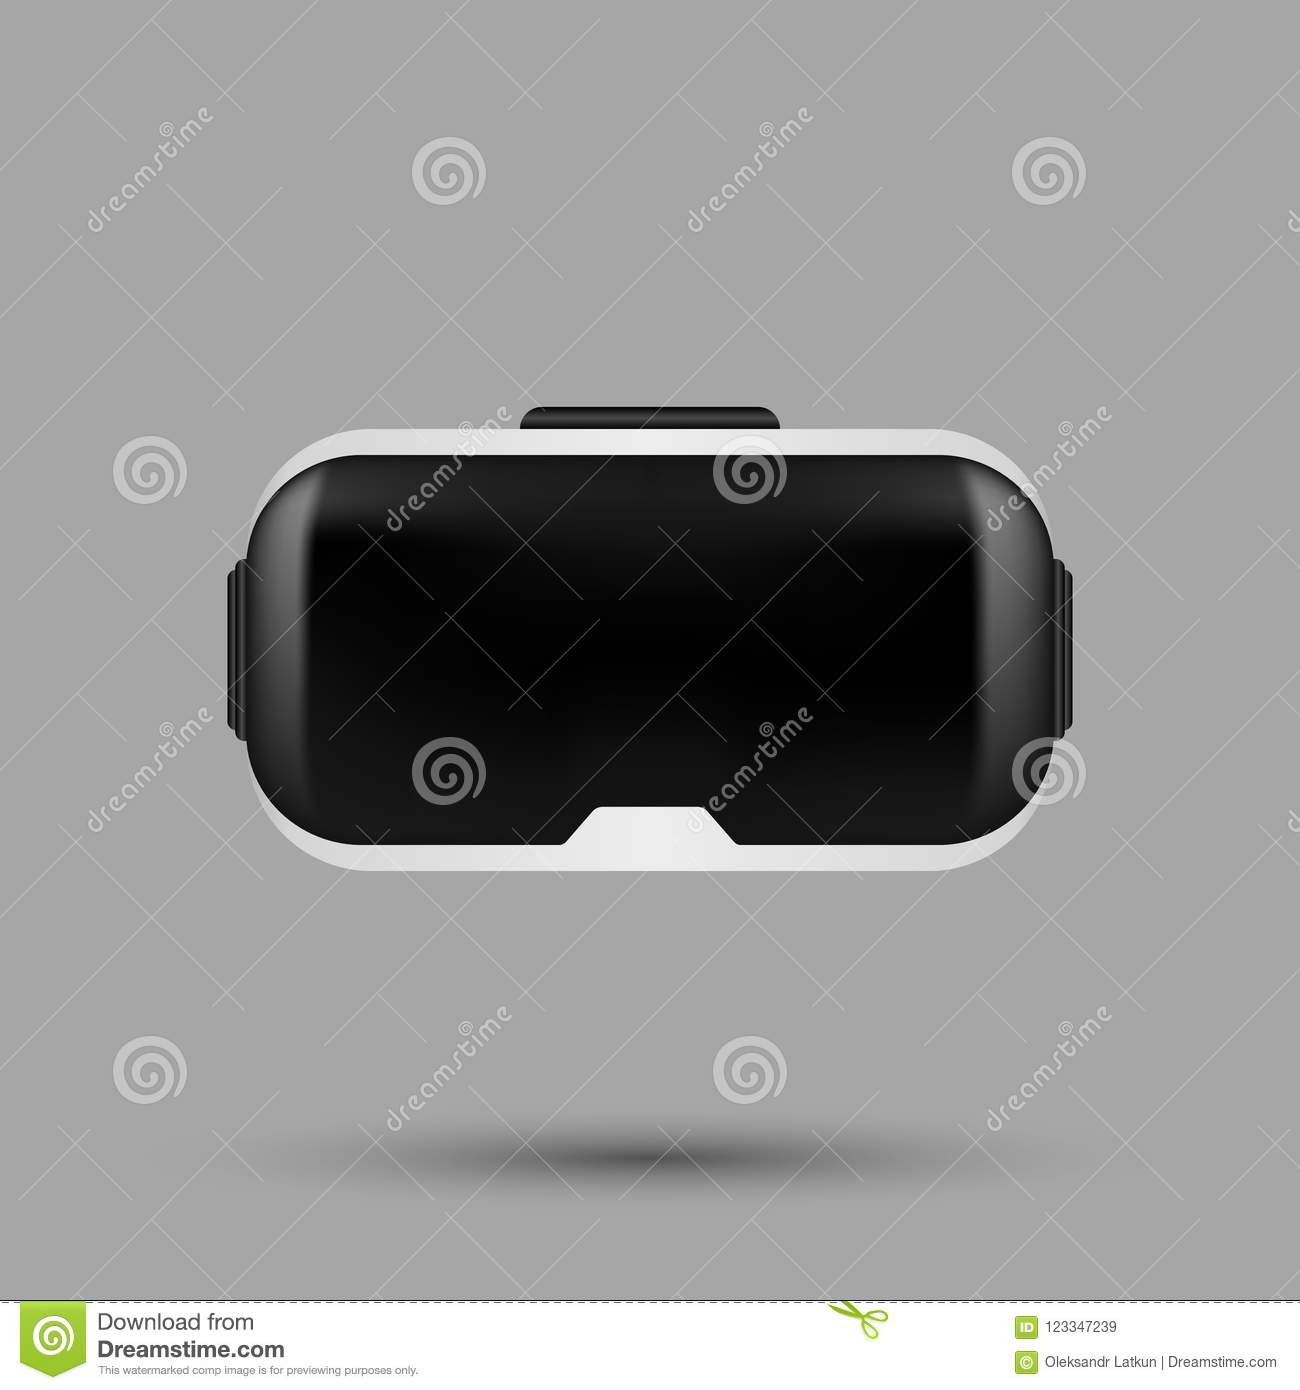 490aaa3e5ed1 White realistic VR virtual reality glasses. VR gaming headset illustration  for apps